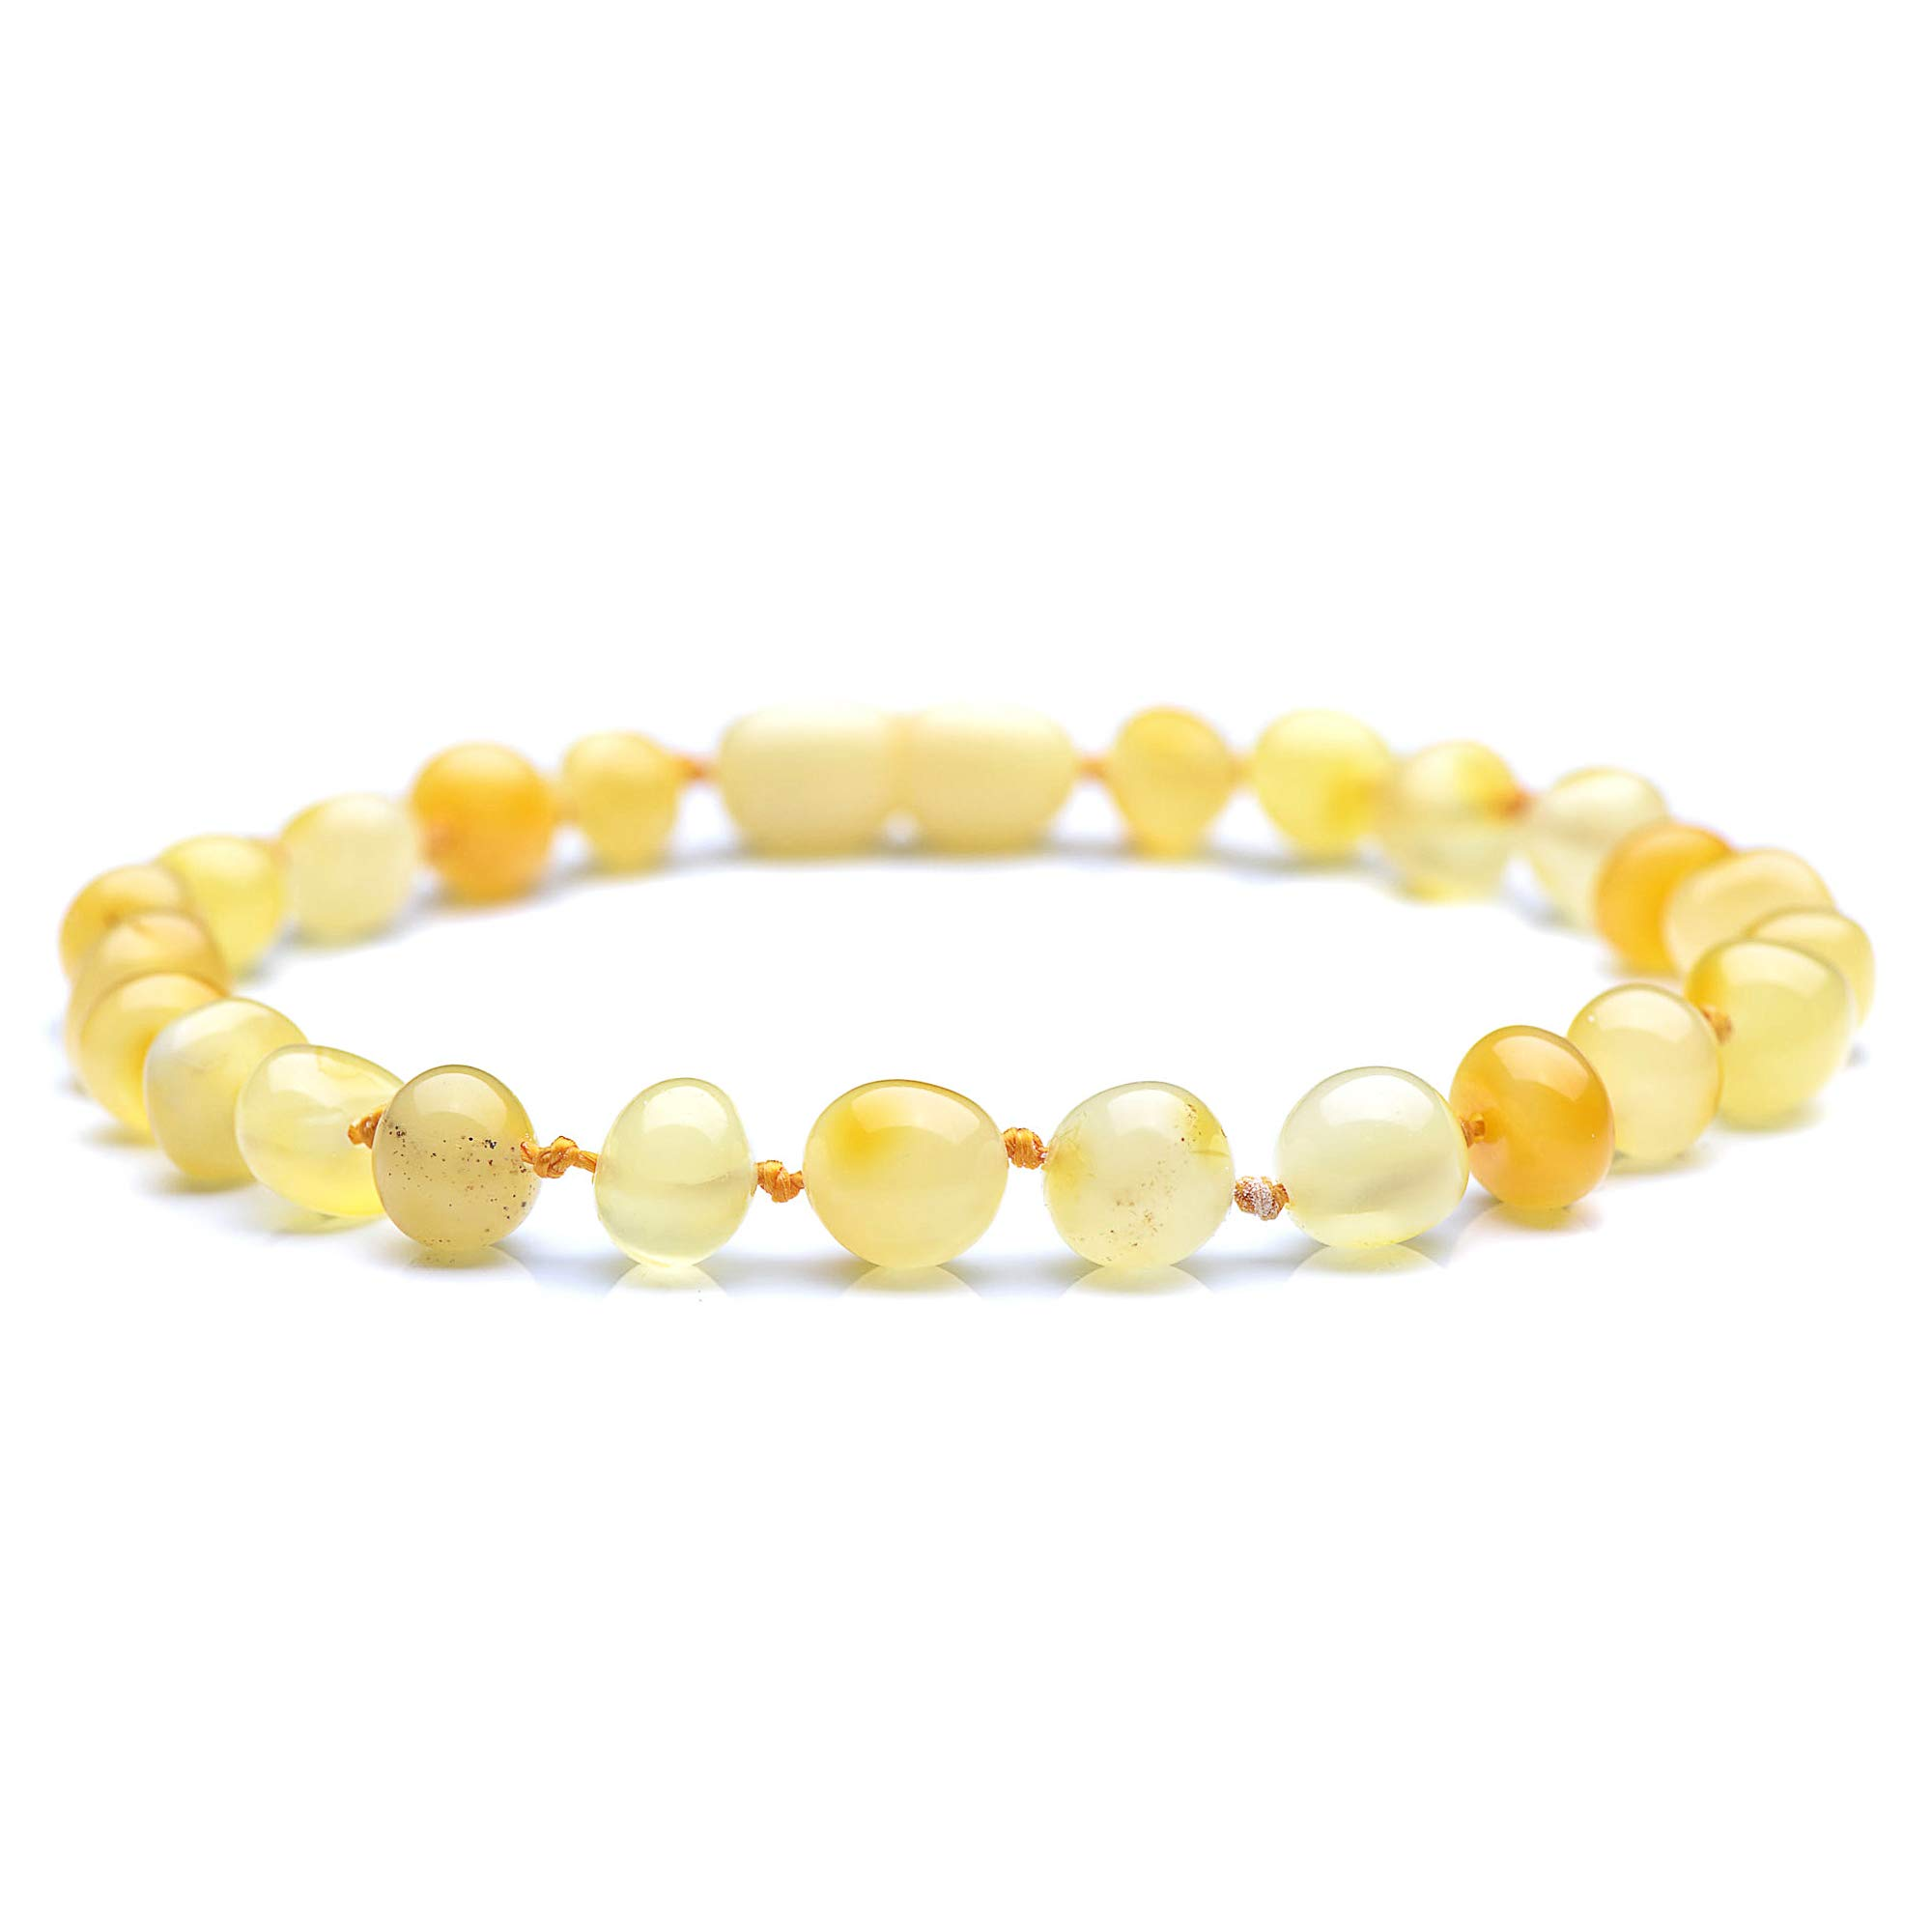 Genuine Baltic Amber Bracelet for Adult - Knotted Between Beads - Screw Clasp (Honey, 7.8) by Genuine Amber